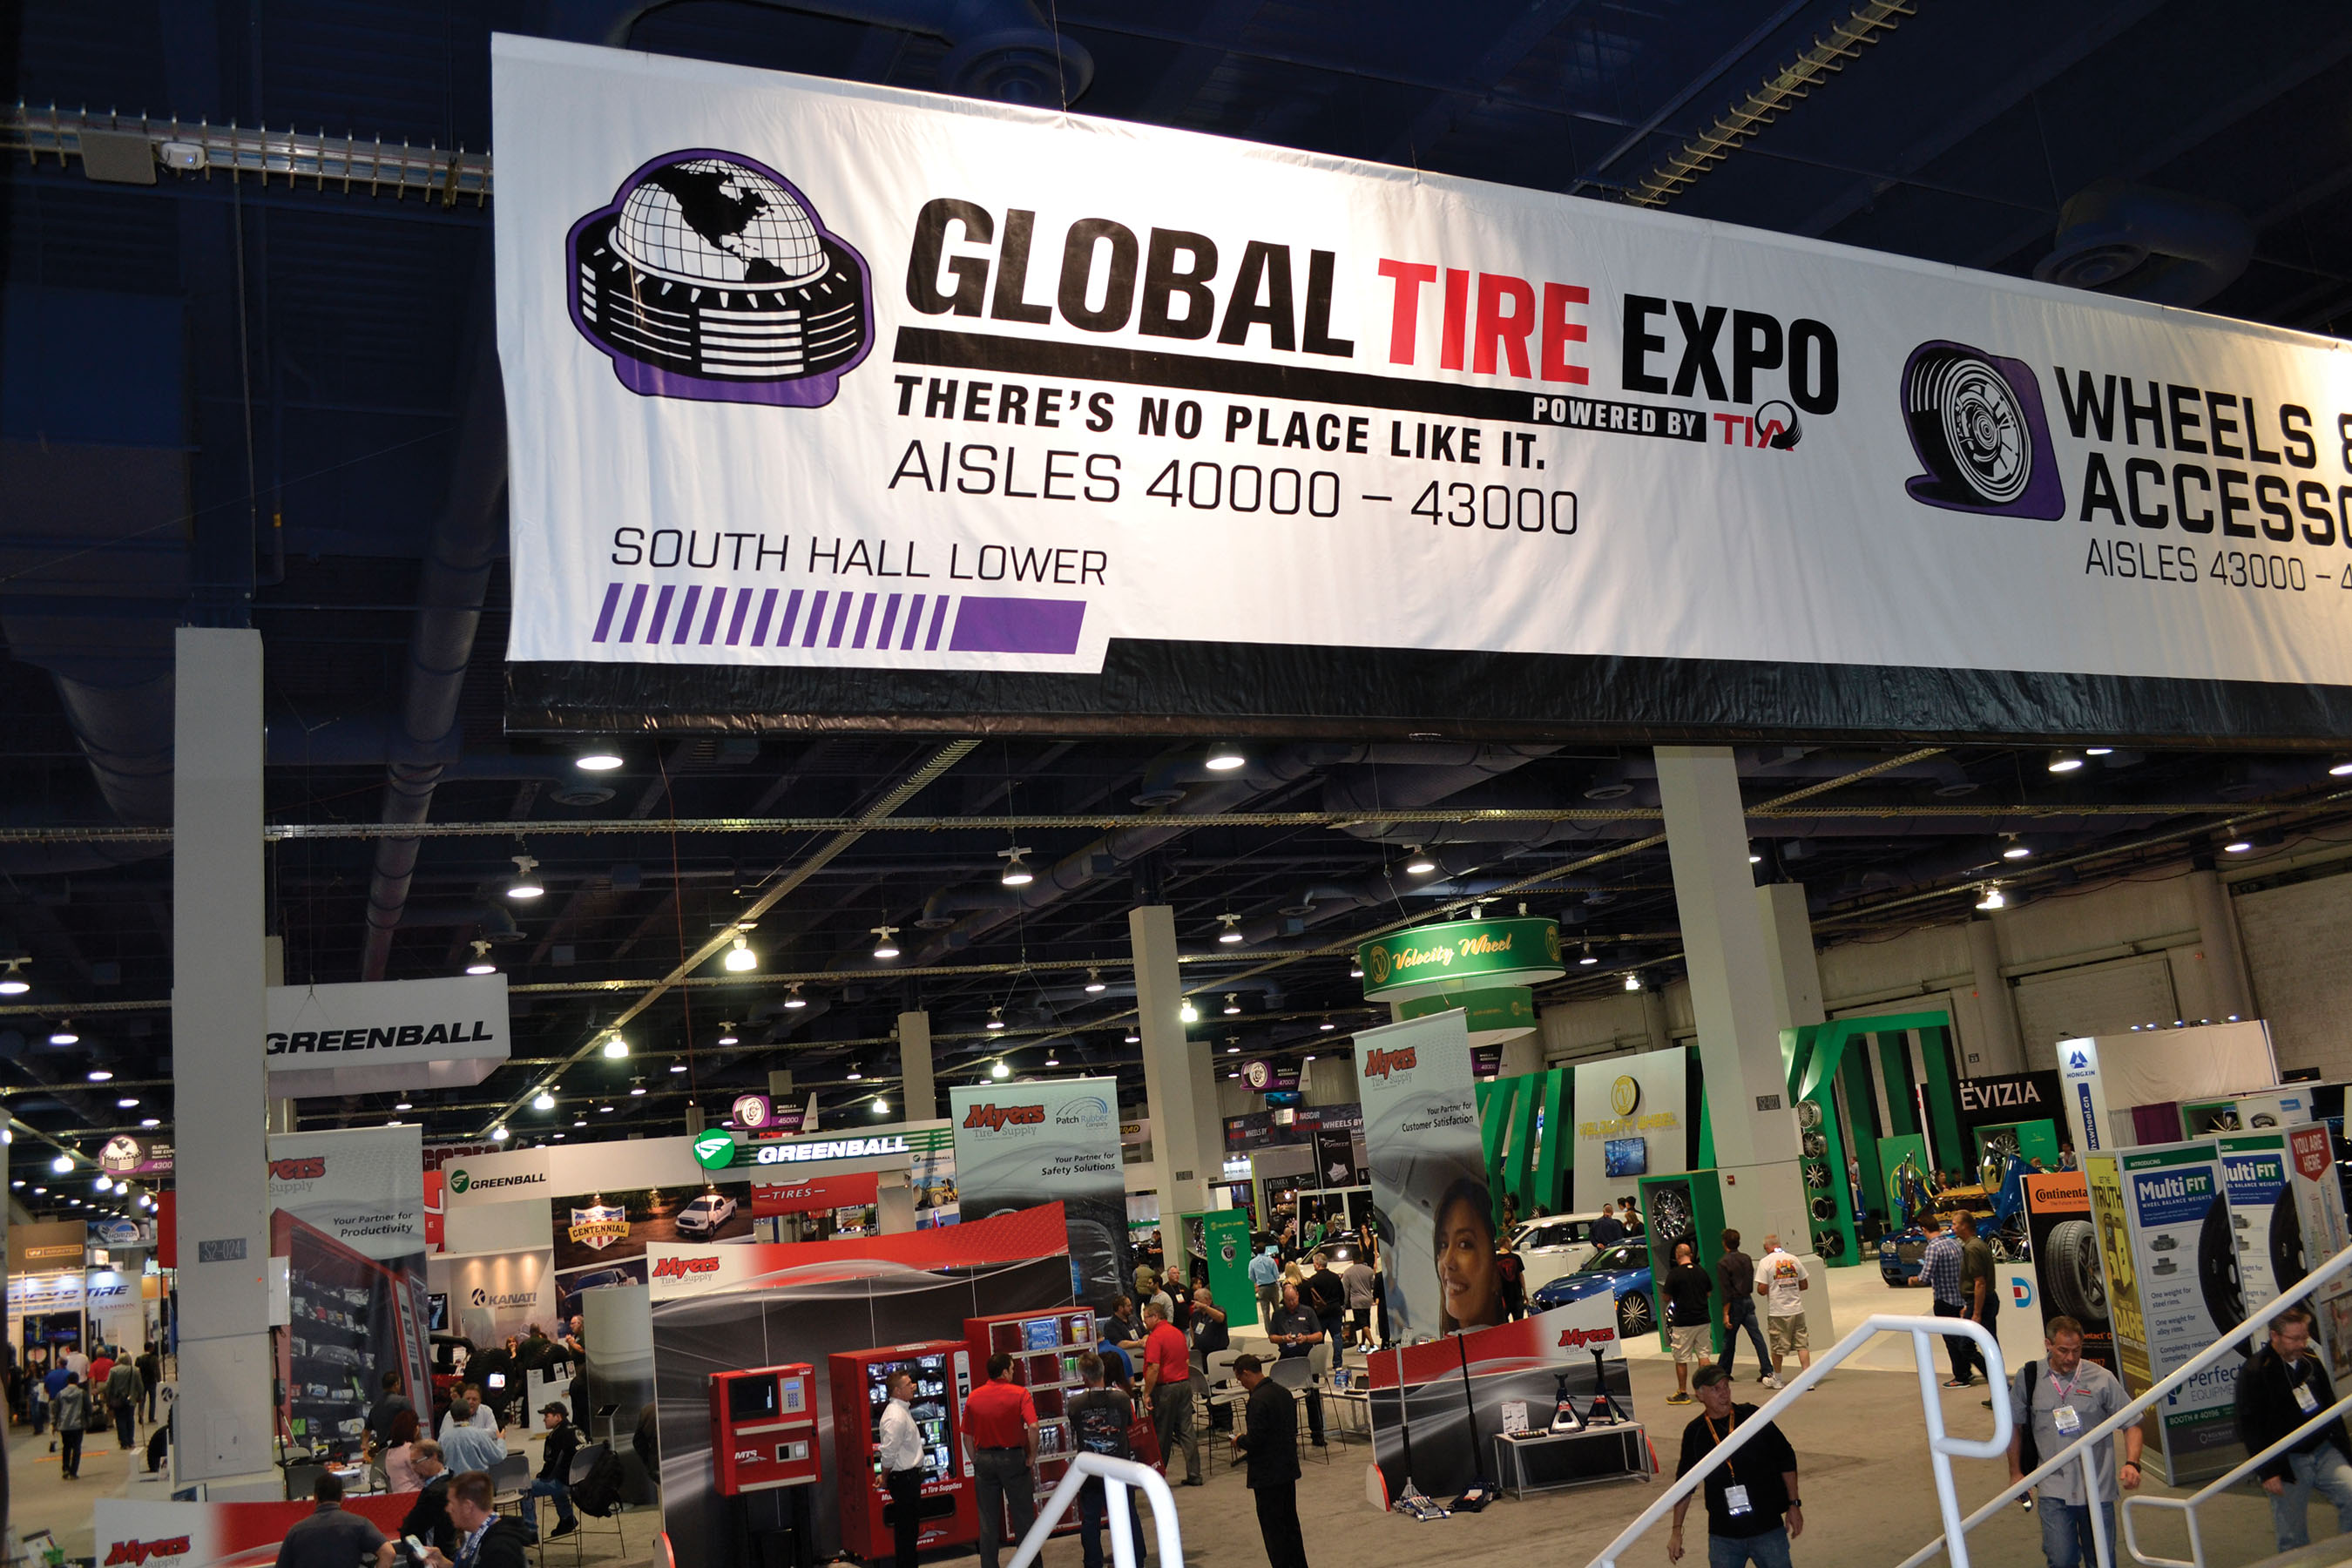 Global Tire Expo and SEMA Show: TIA and SEMA Up the Ante with Focus on New Technology